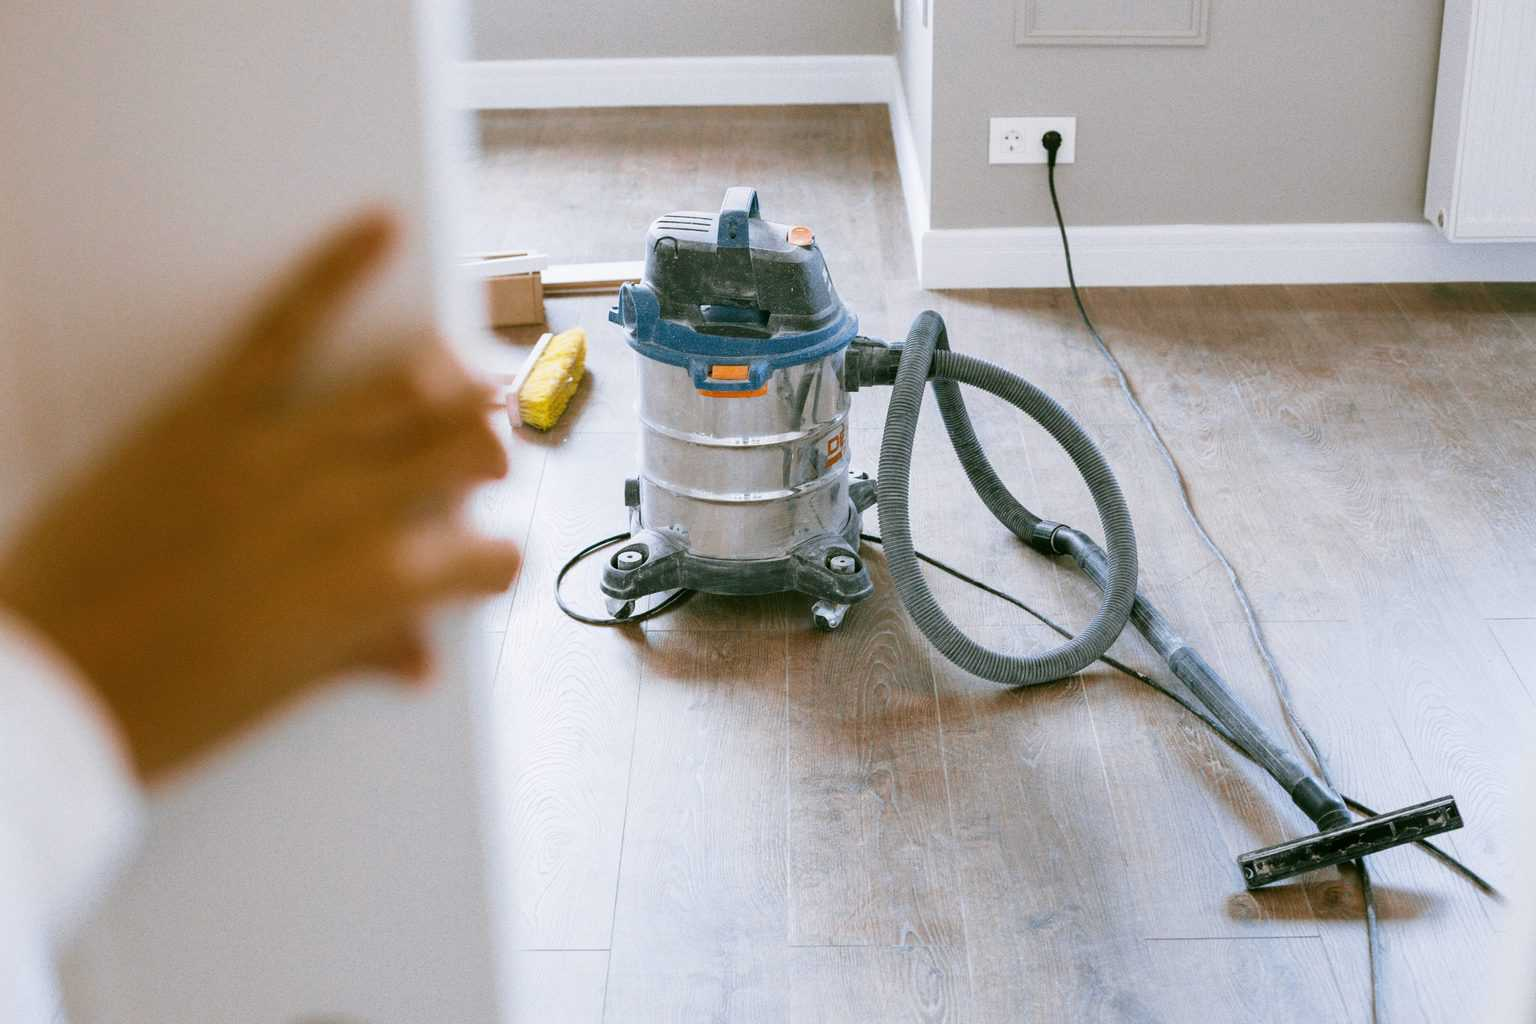 Wet dry vac ready to use to clean the wooden floors